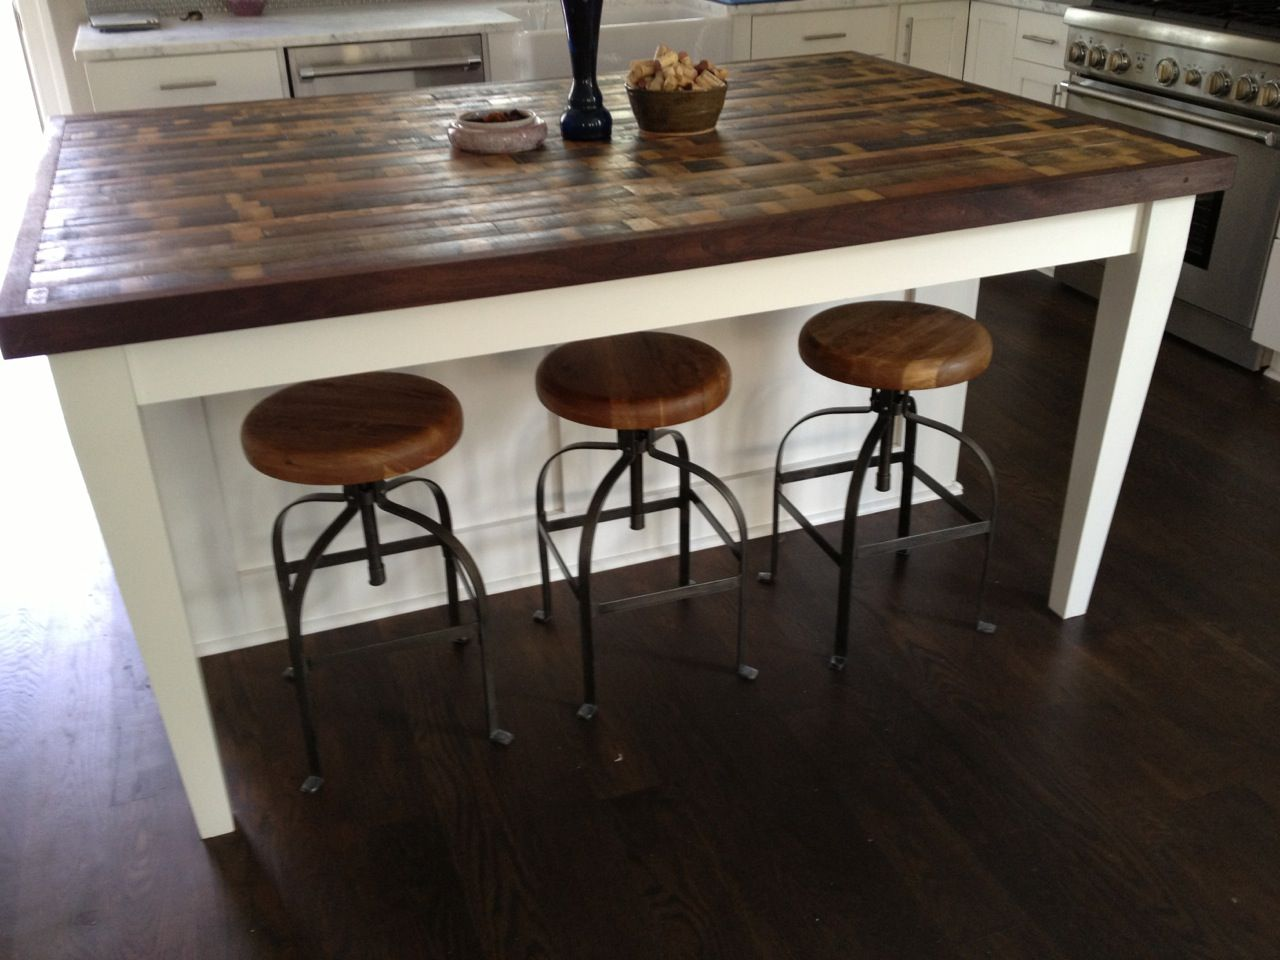 Diy Kitchen Island Bar best 25+ diy kitchen island ideas on pinterest | build kitchen